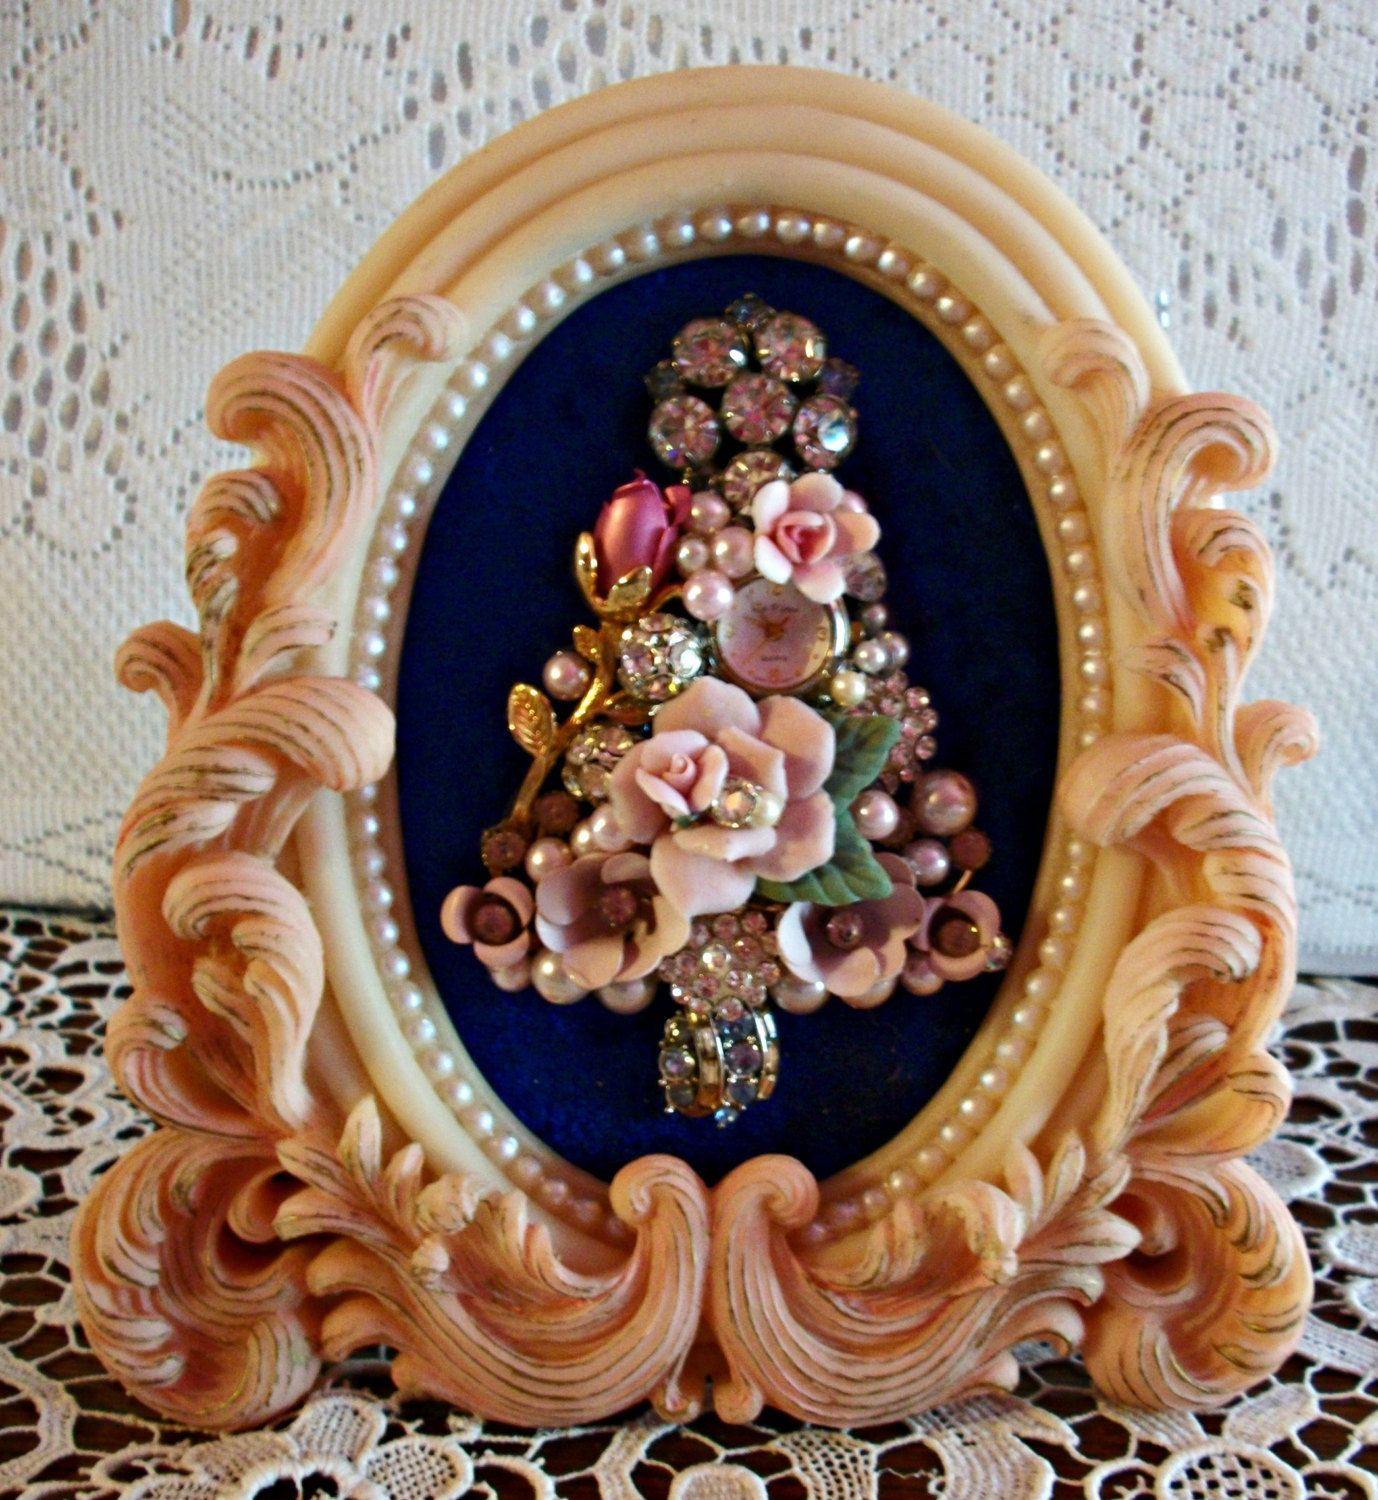 Vintage Jewelry Framed Christmas Tree by Moondiamonds on Etsy  SOLD!